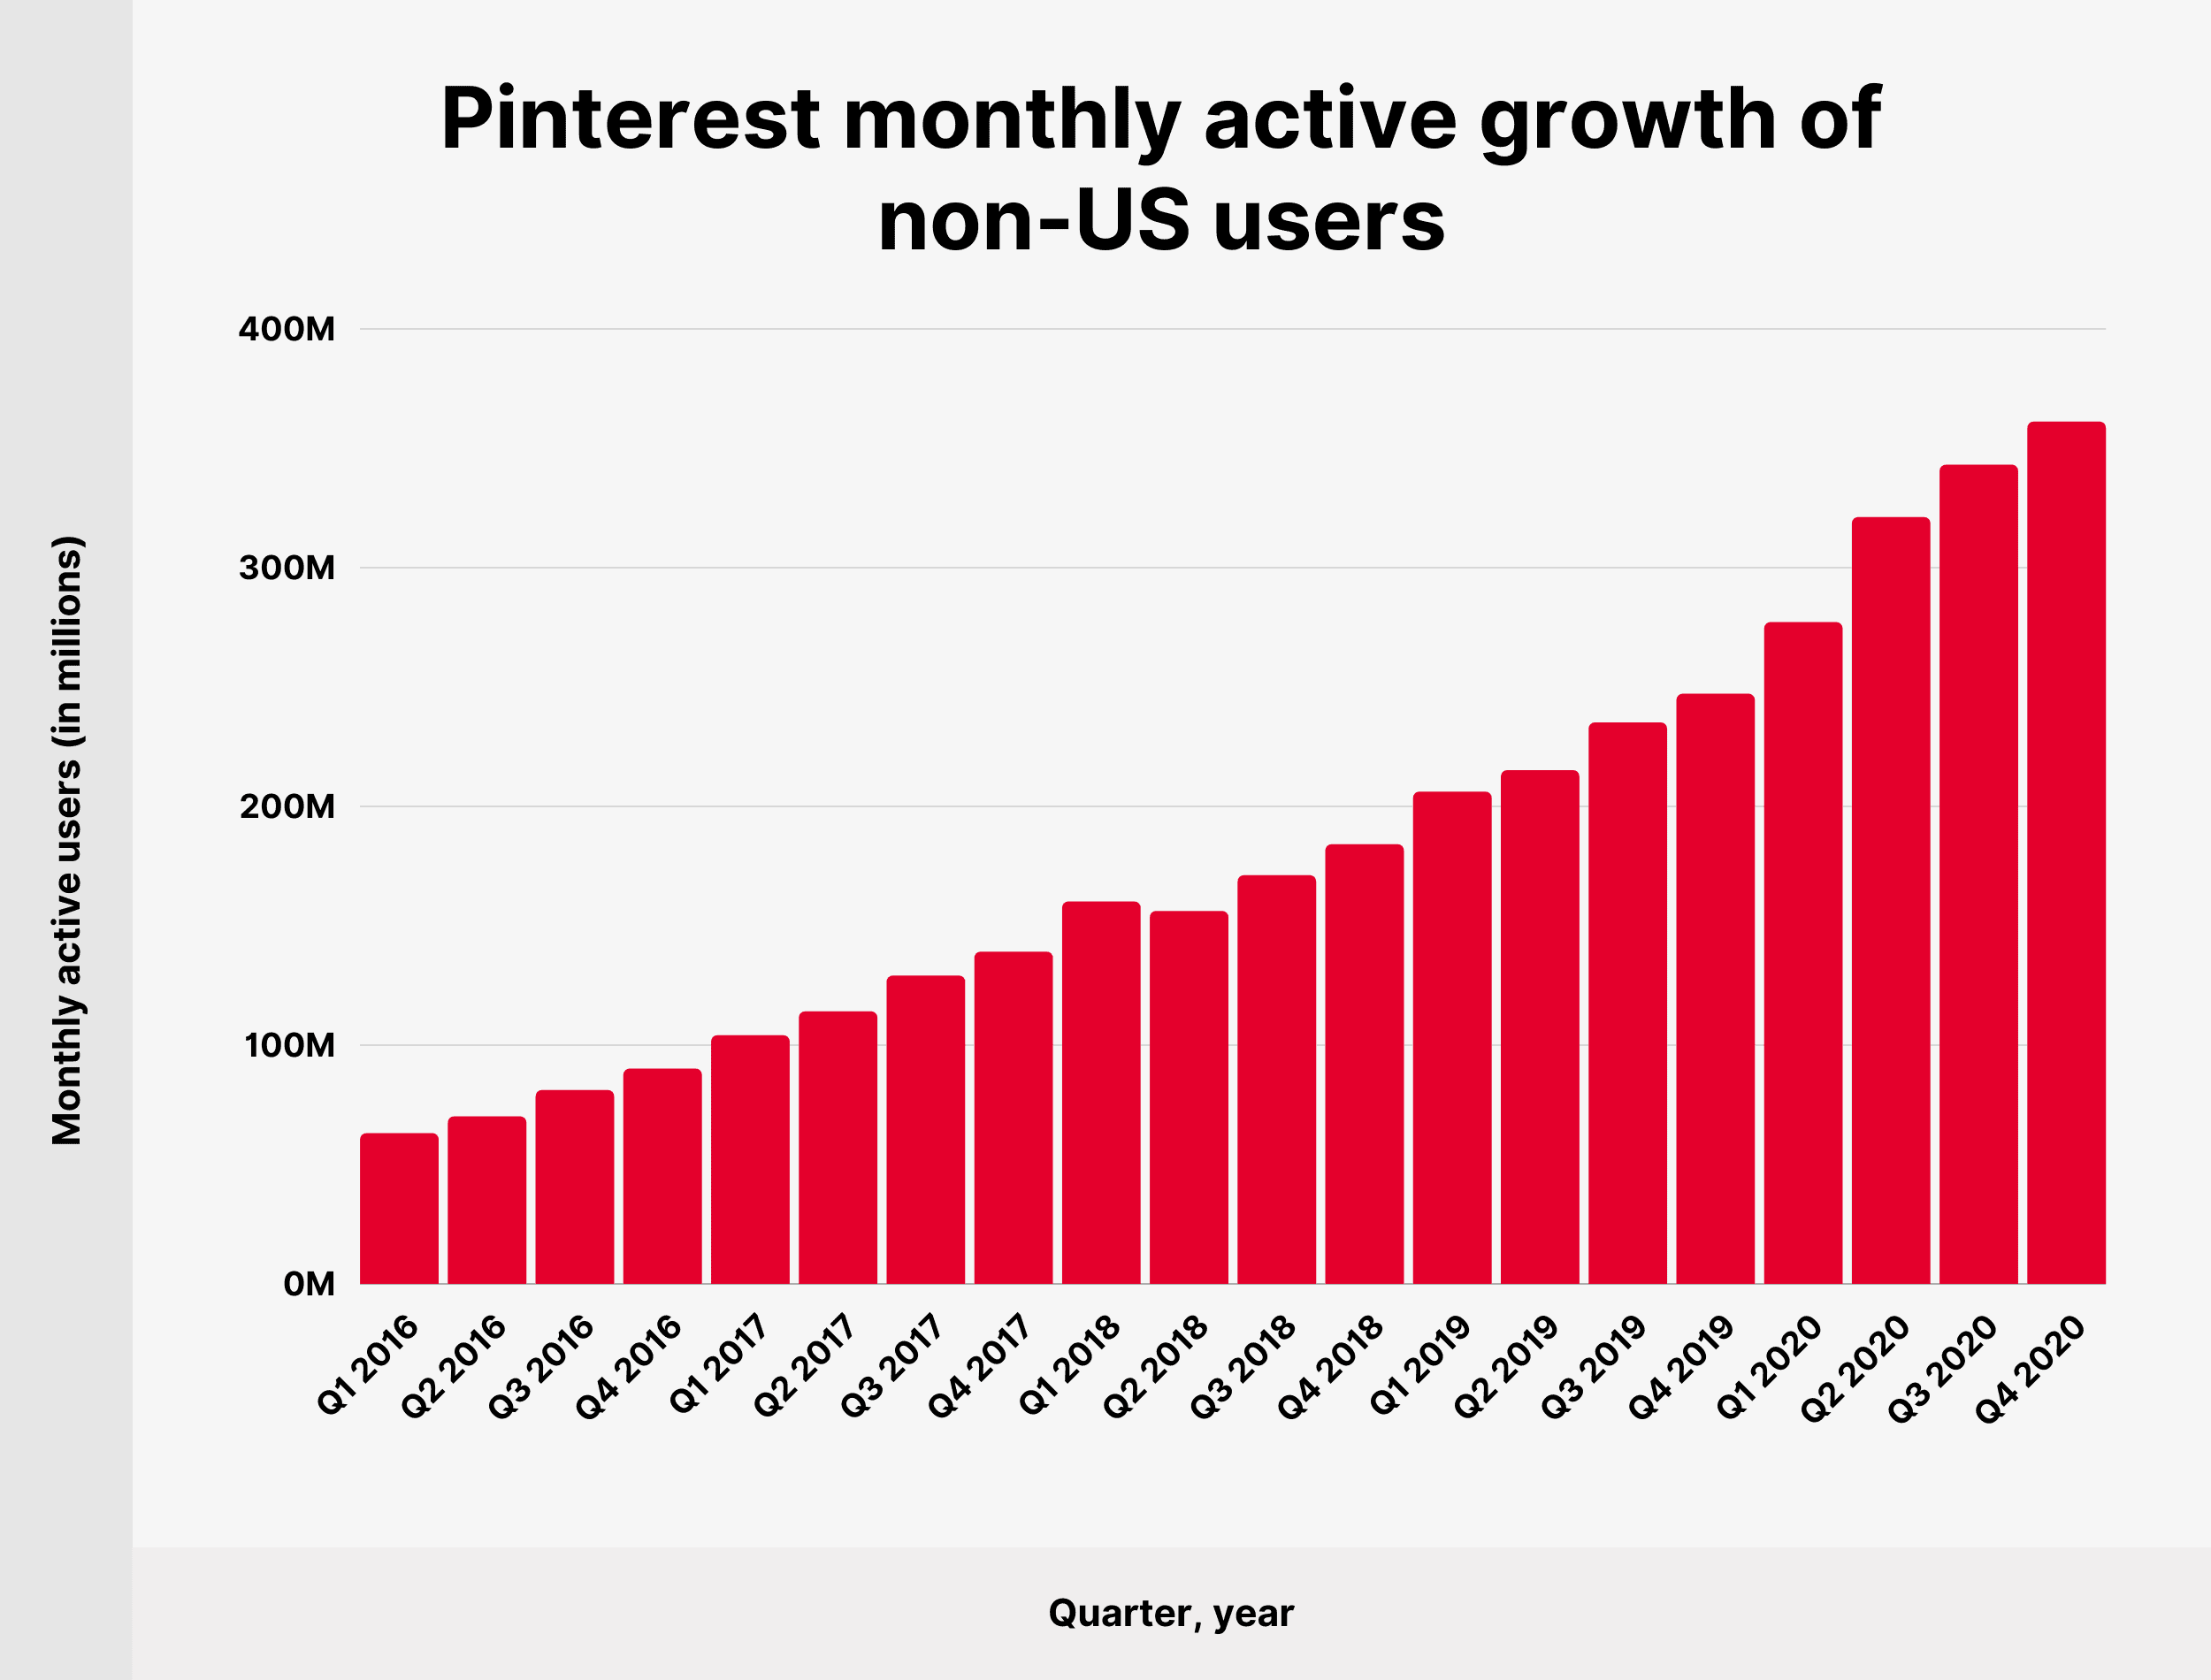 Pinterest monthly active growth of non-US users